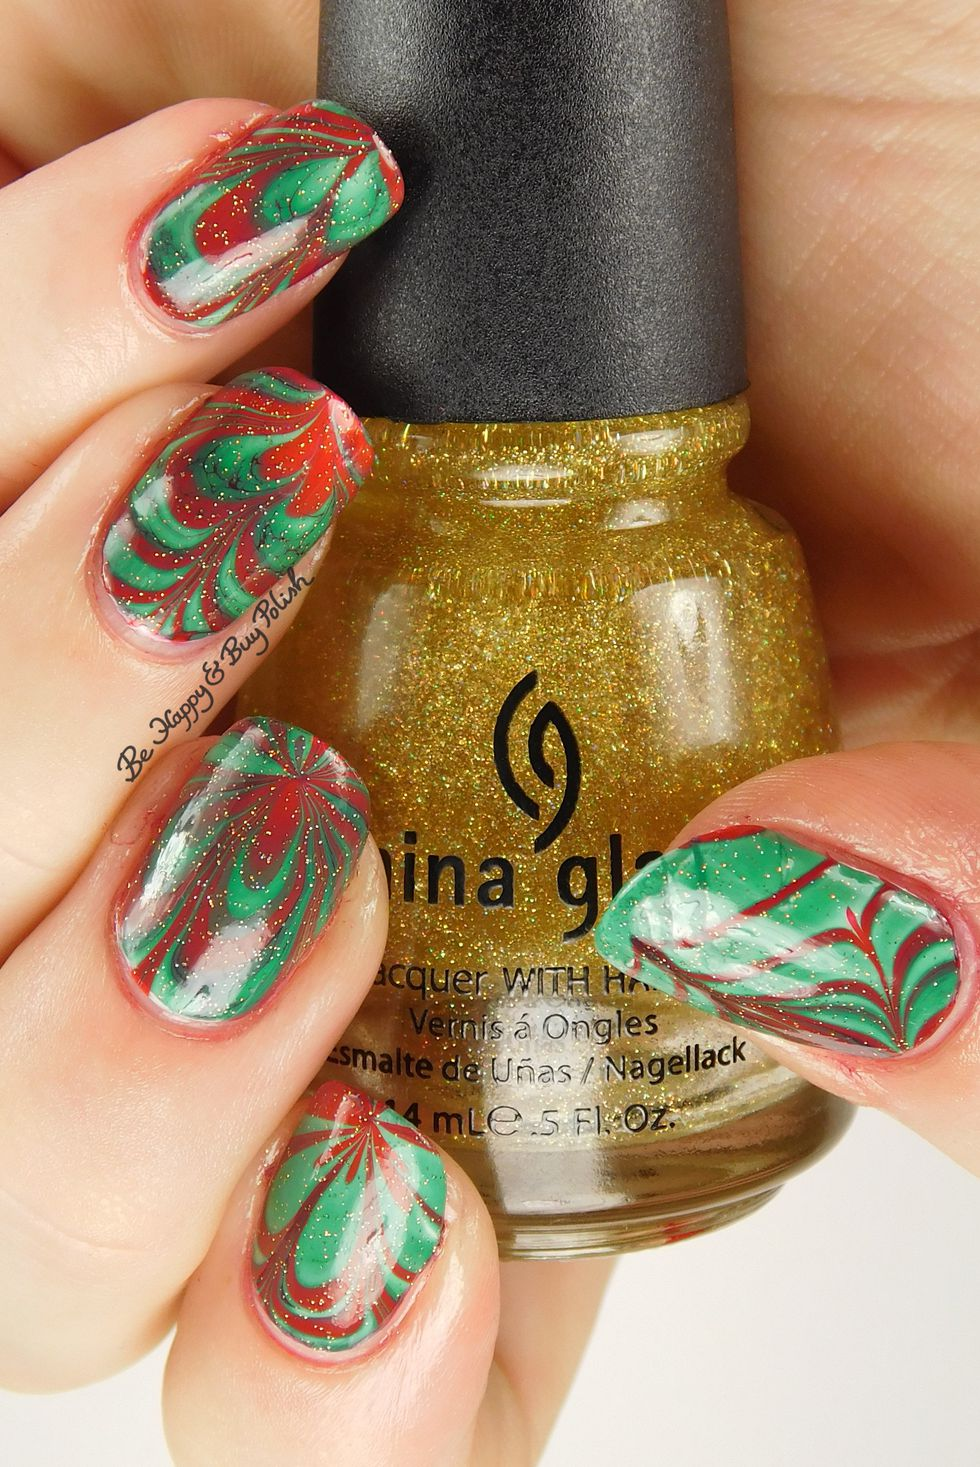 Green and Red Marbled Nail Art